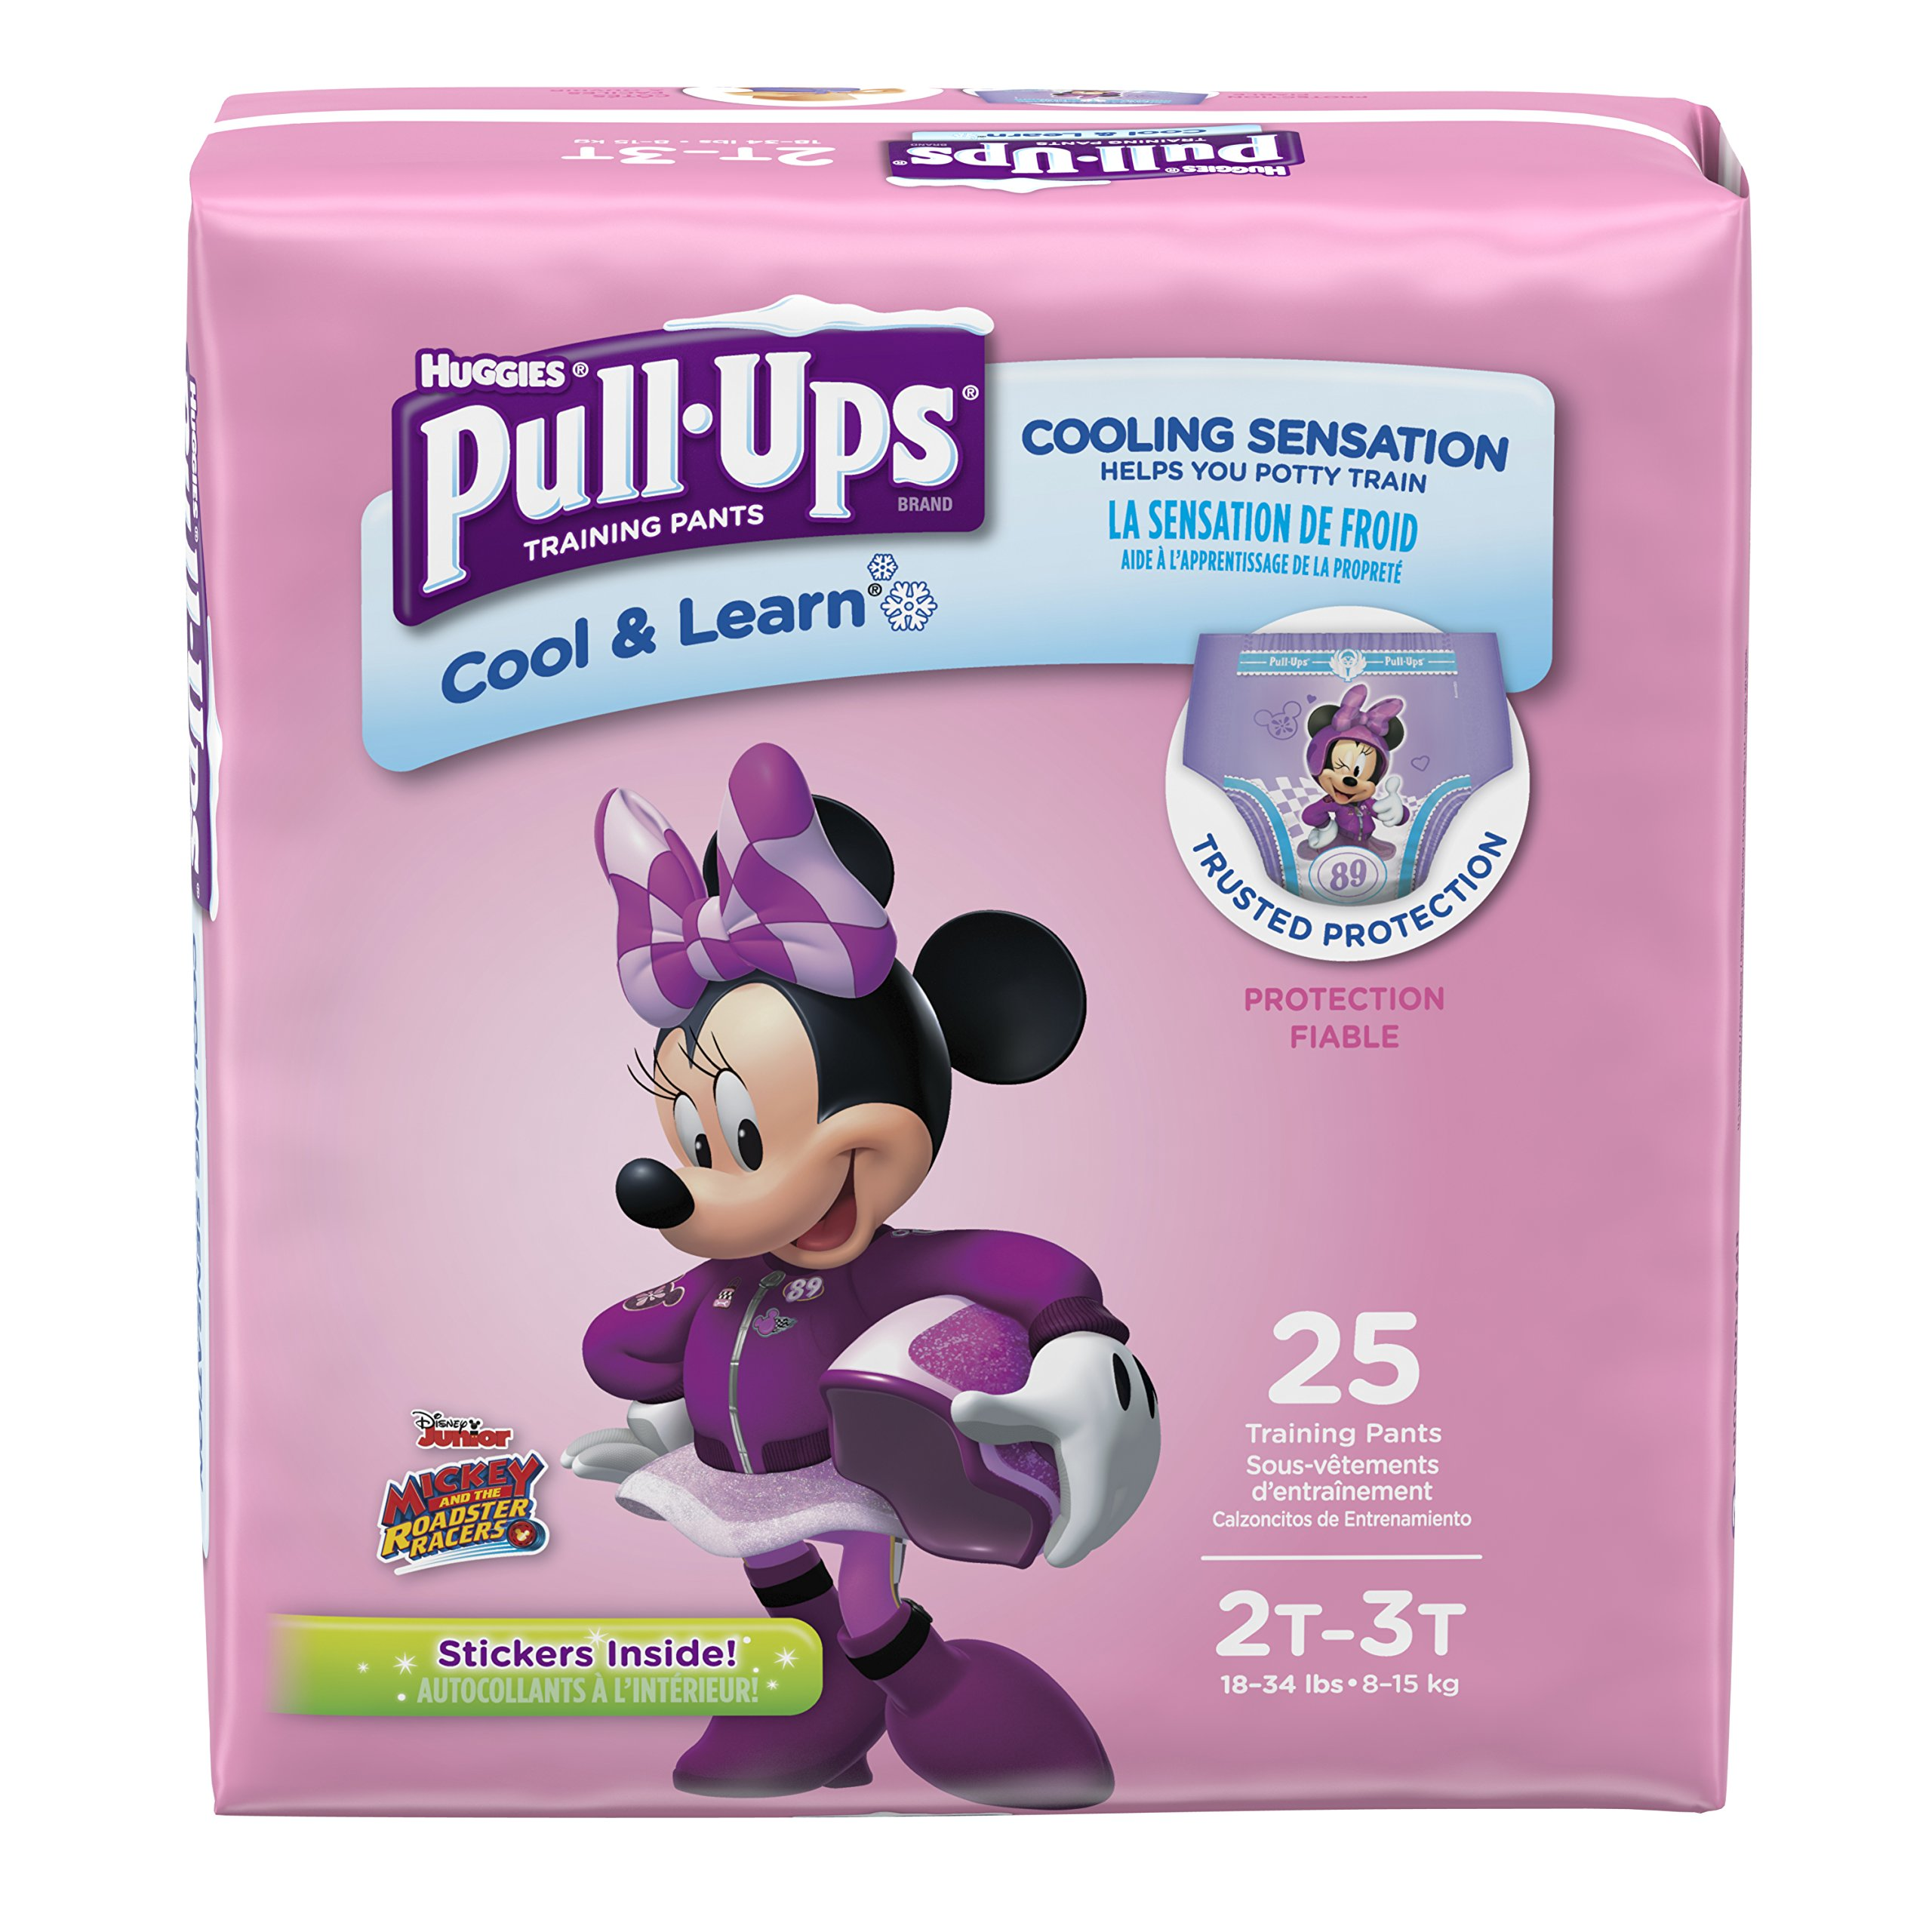 Pull-Ups Cool & Learn Potty Training Pants for Girls, 2T-3T (18-34 lb.), 25 Ct. (Packaging May Vary)